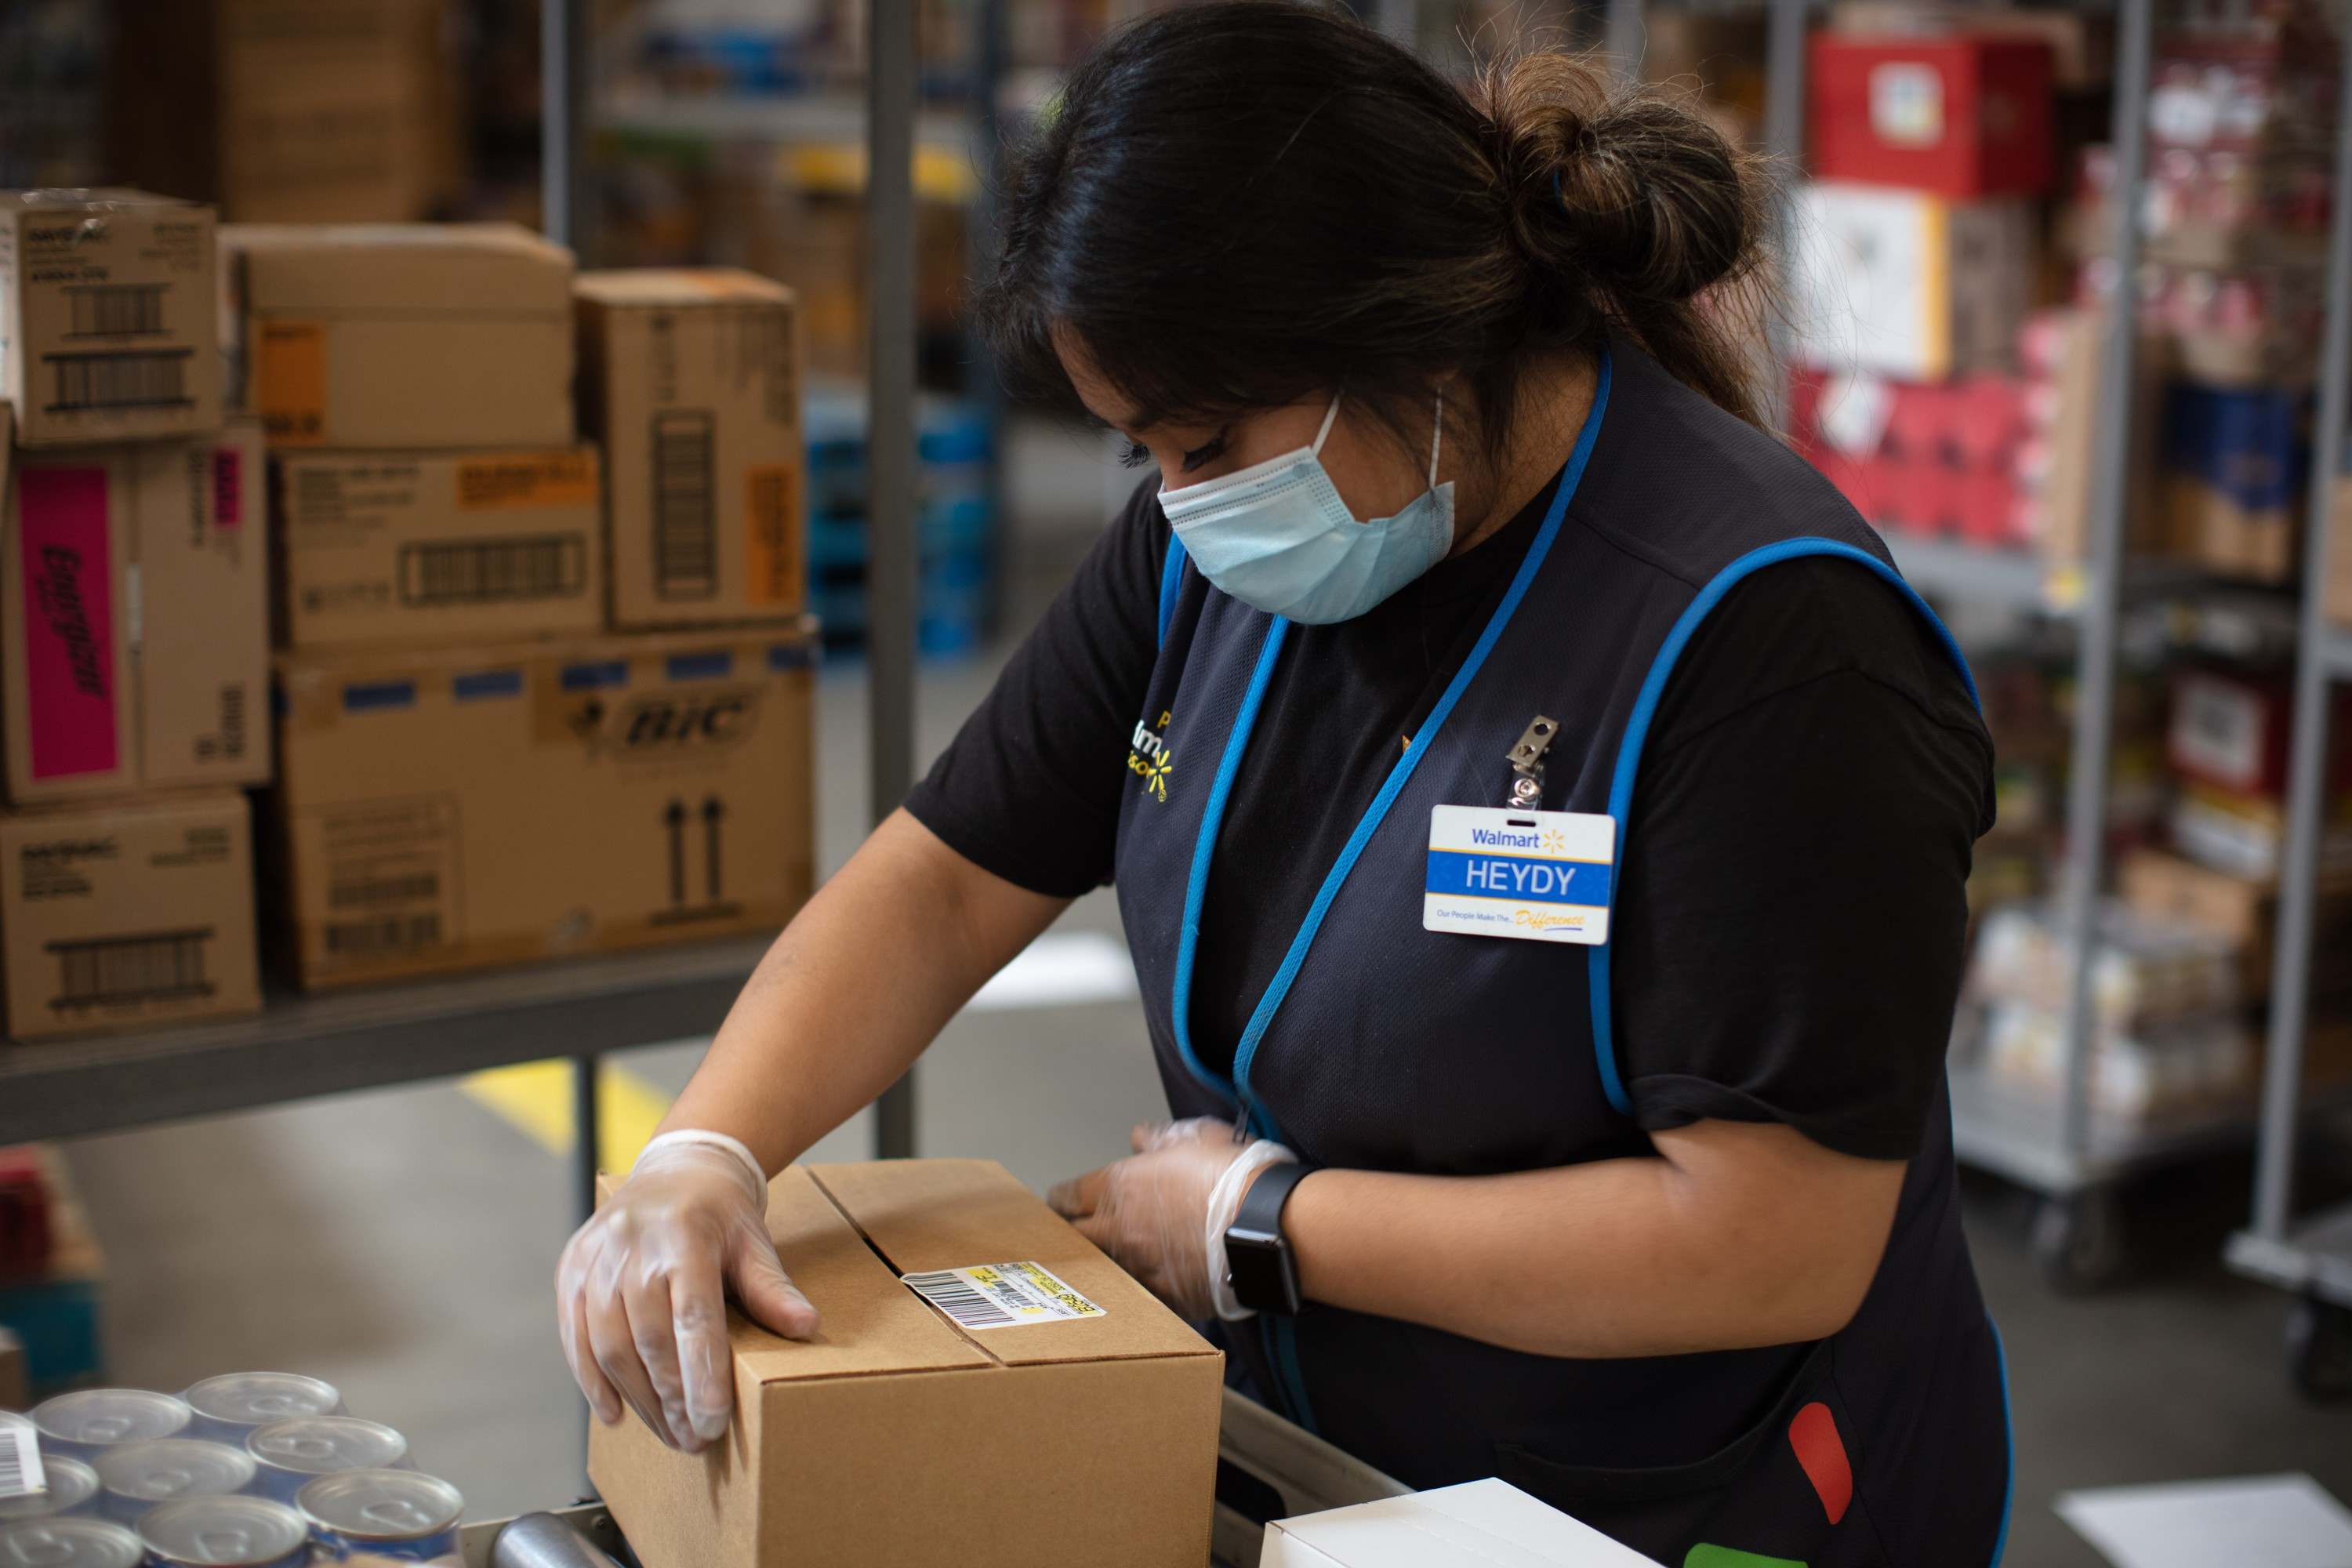 Heydy, a Walmart associate, wears a mask while unloading boxes